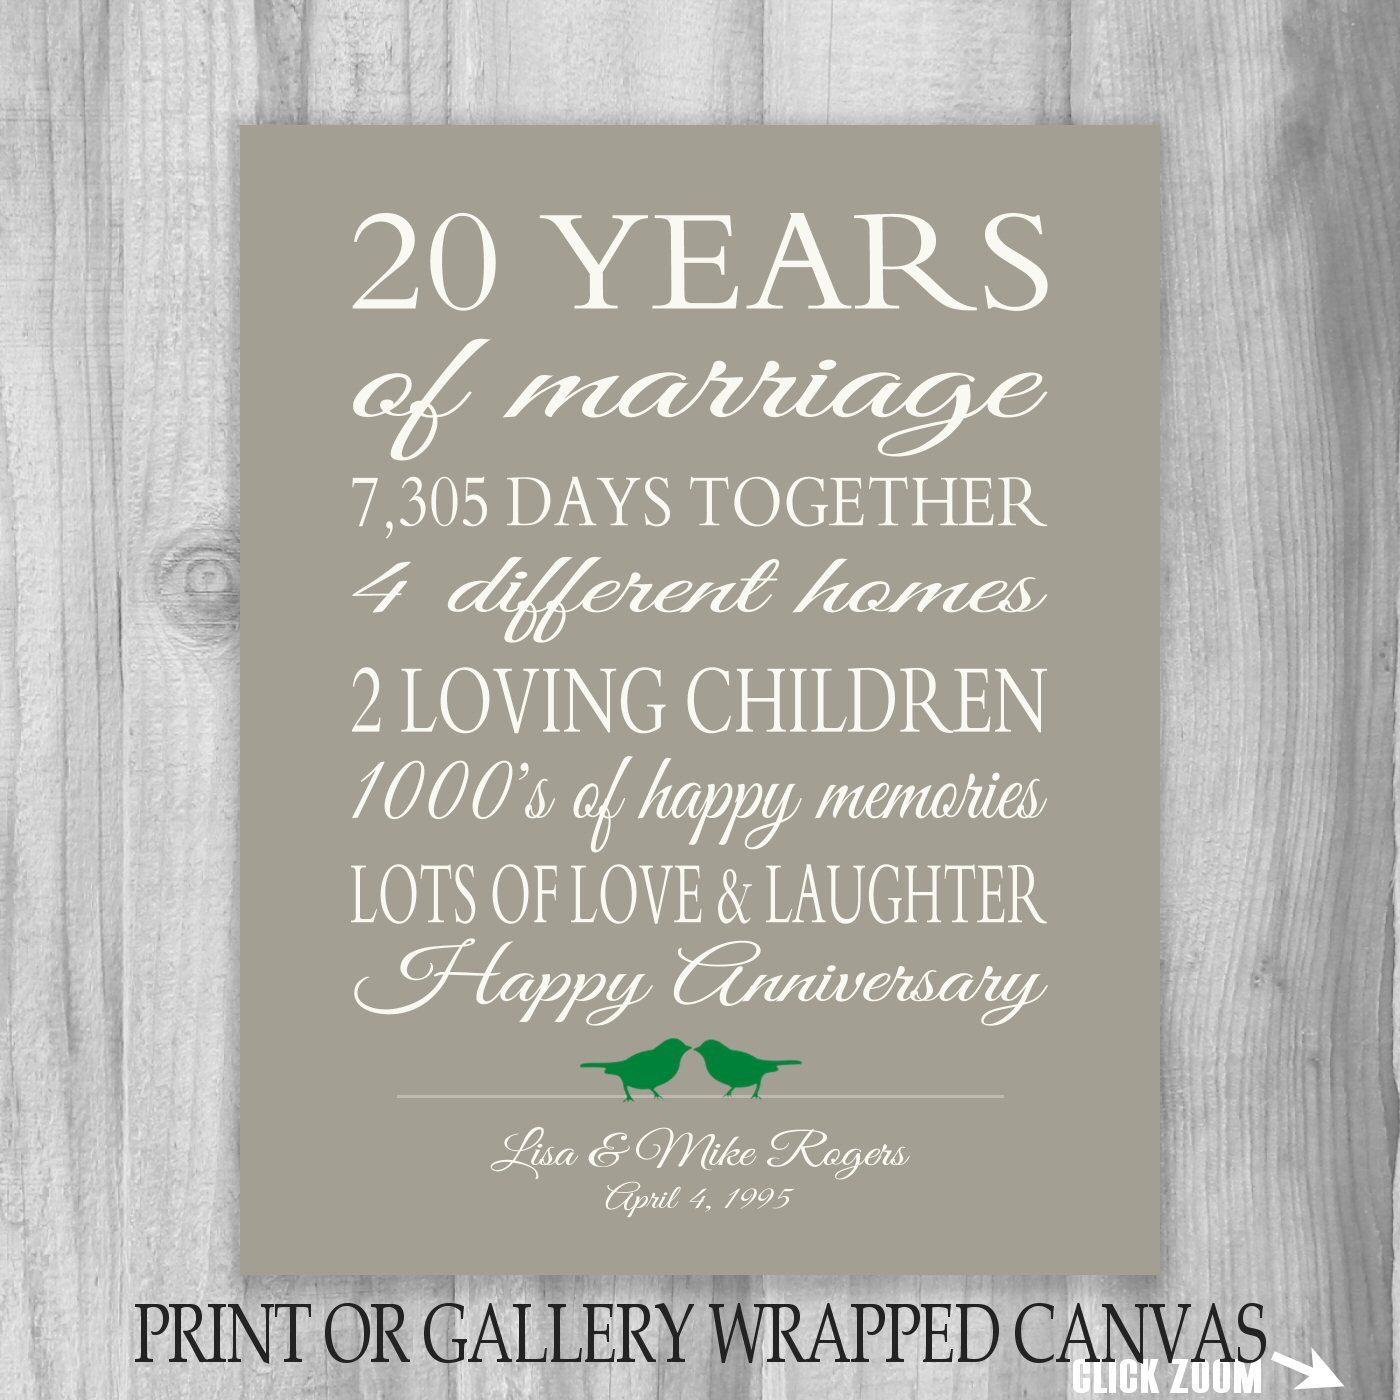 20 Year Wedding Anniversary Gift Ideas: Pin By Kathy Morris On Gifts